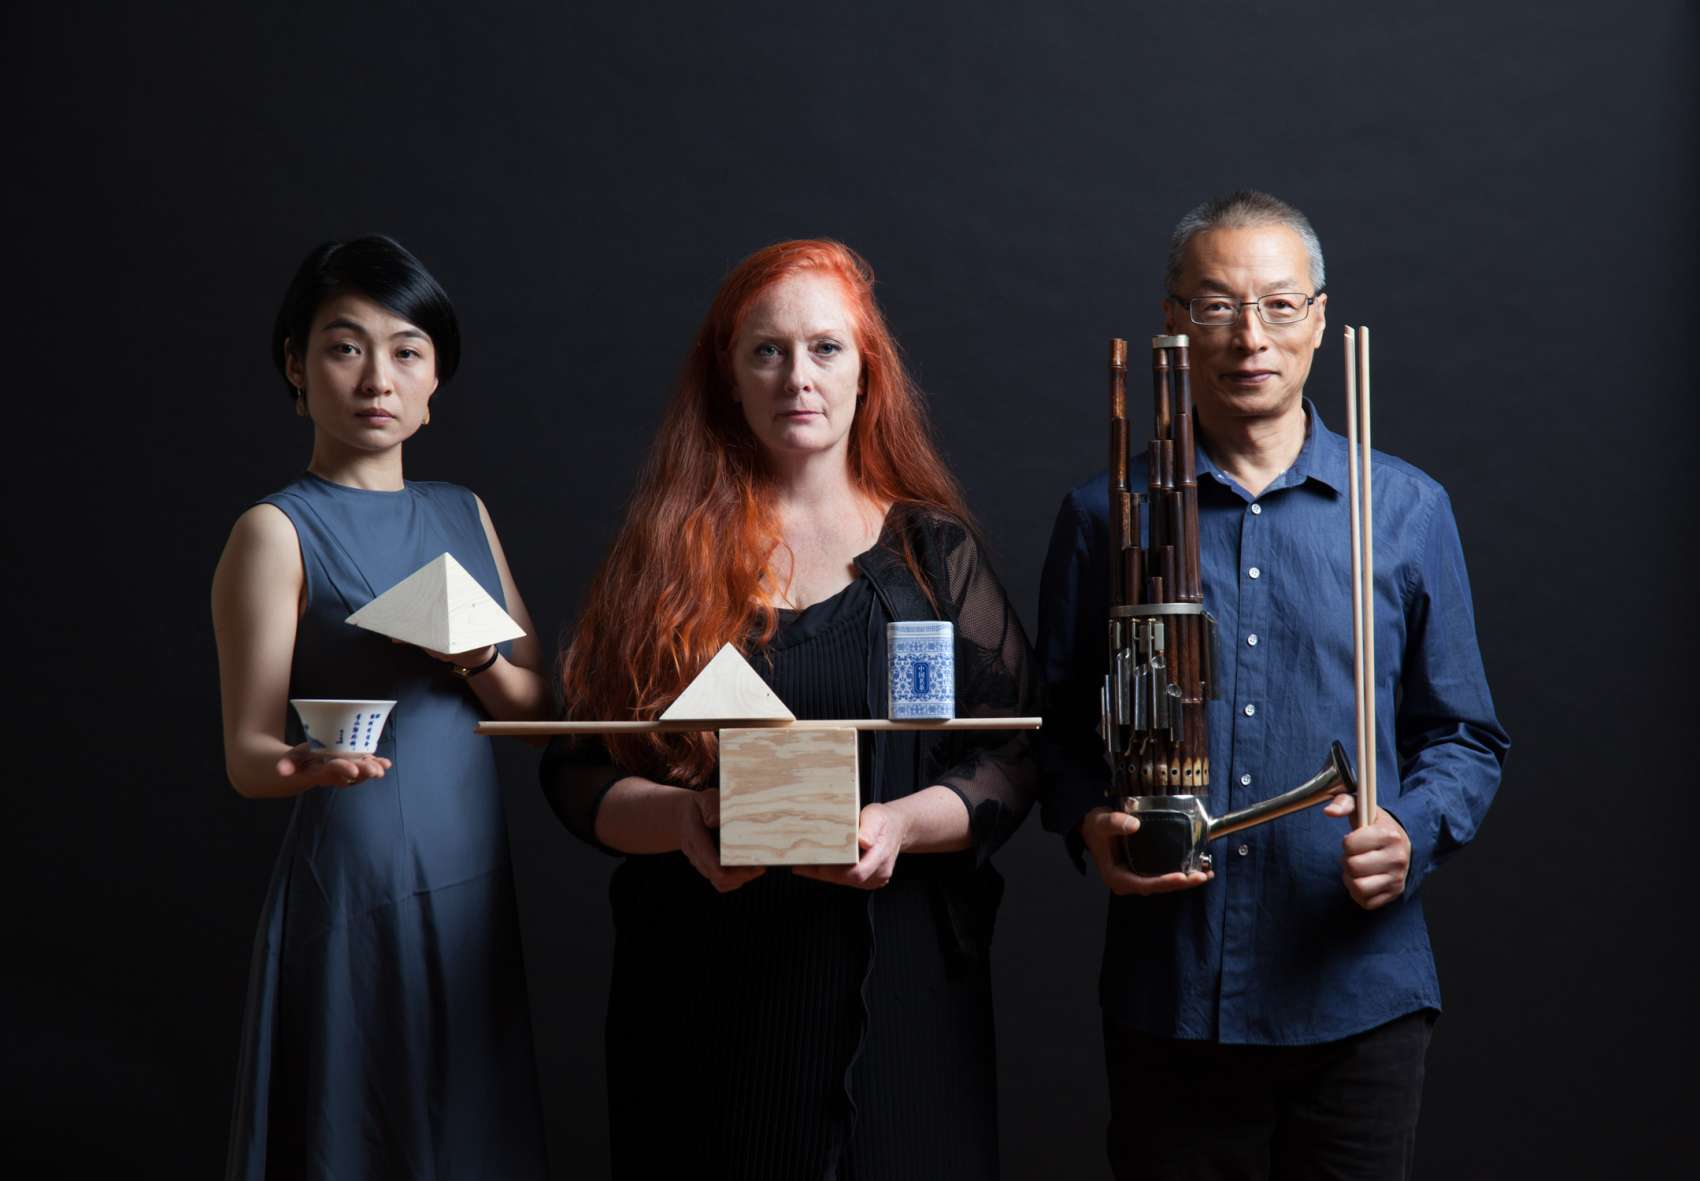 Three performers holding geometric objects and musical instruments.